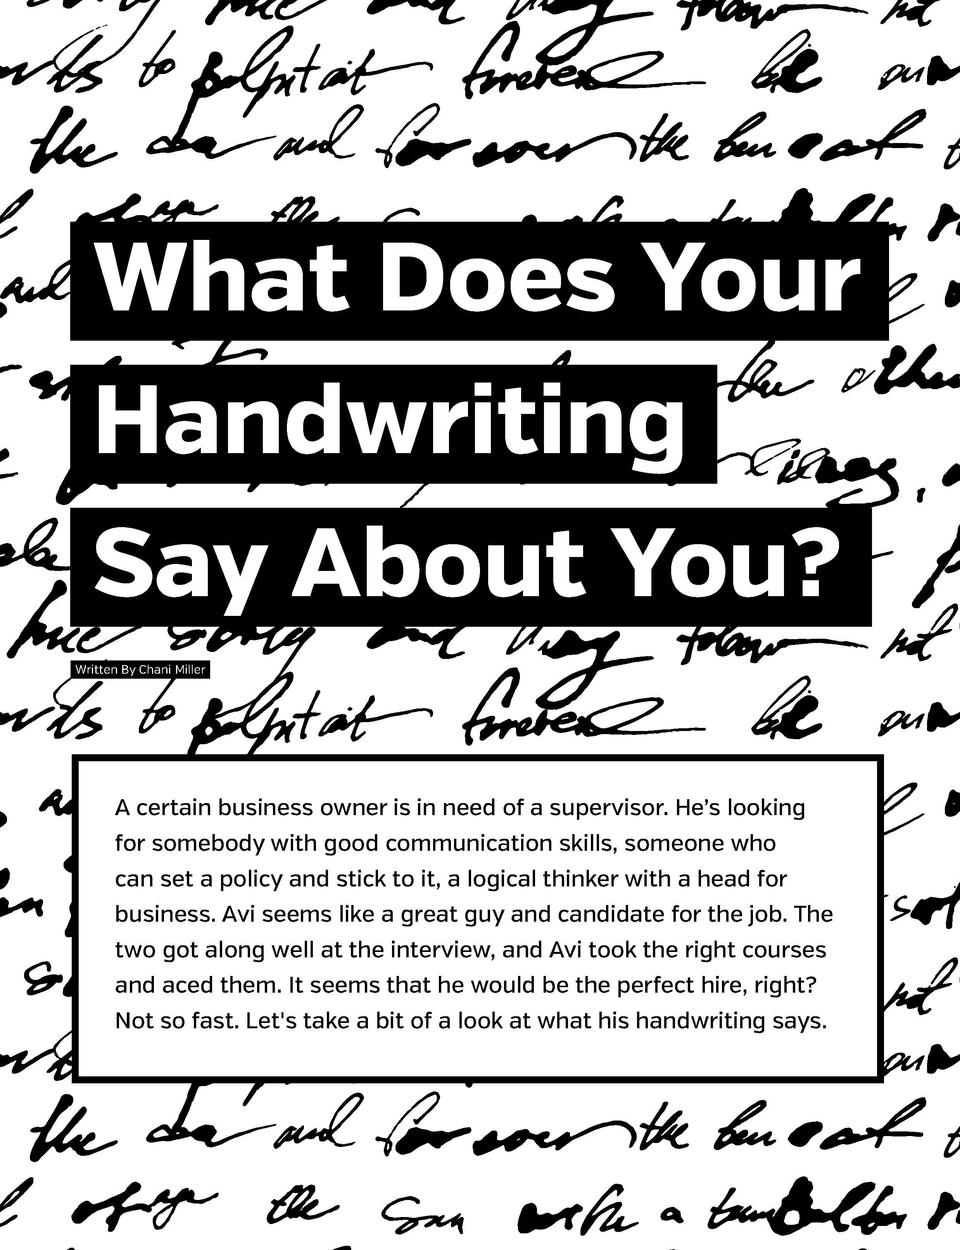 What Does Your Handwriting Say About You  Written By Chani Miller  A certain business owner is in need of a supervisor. He...